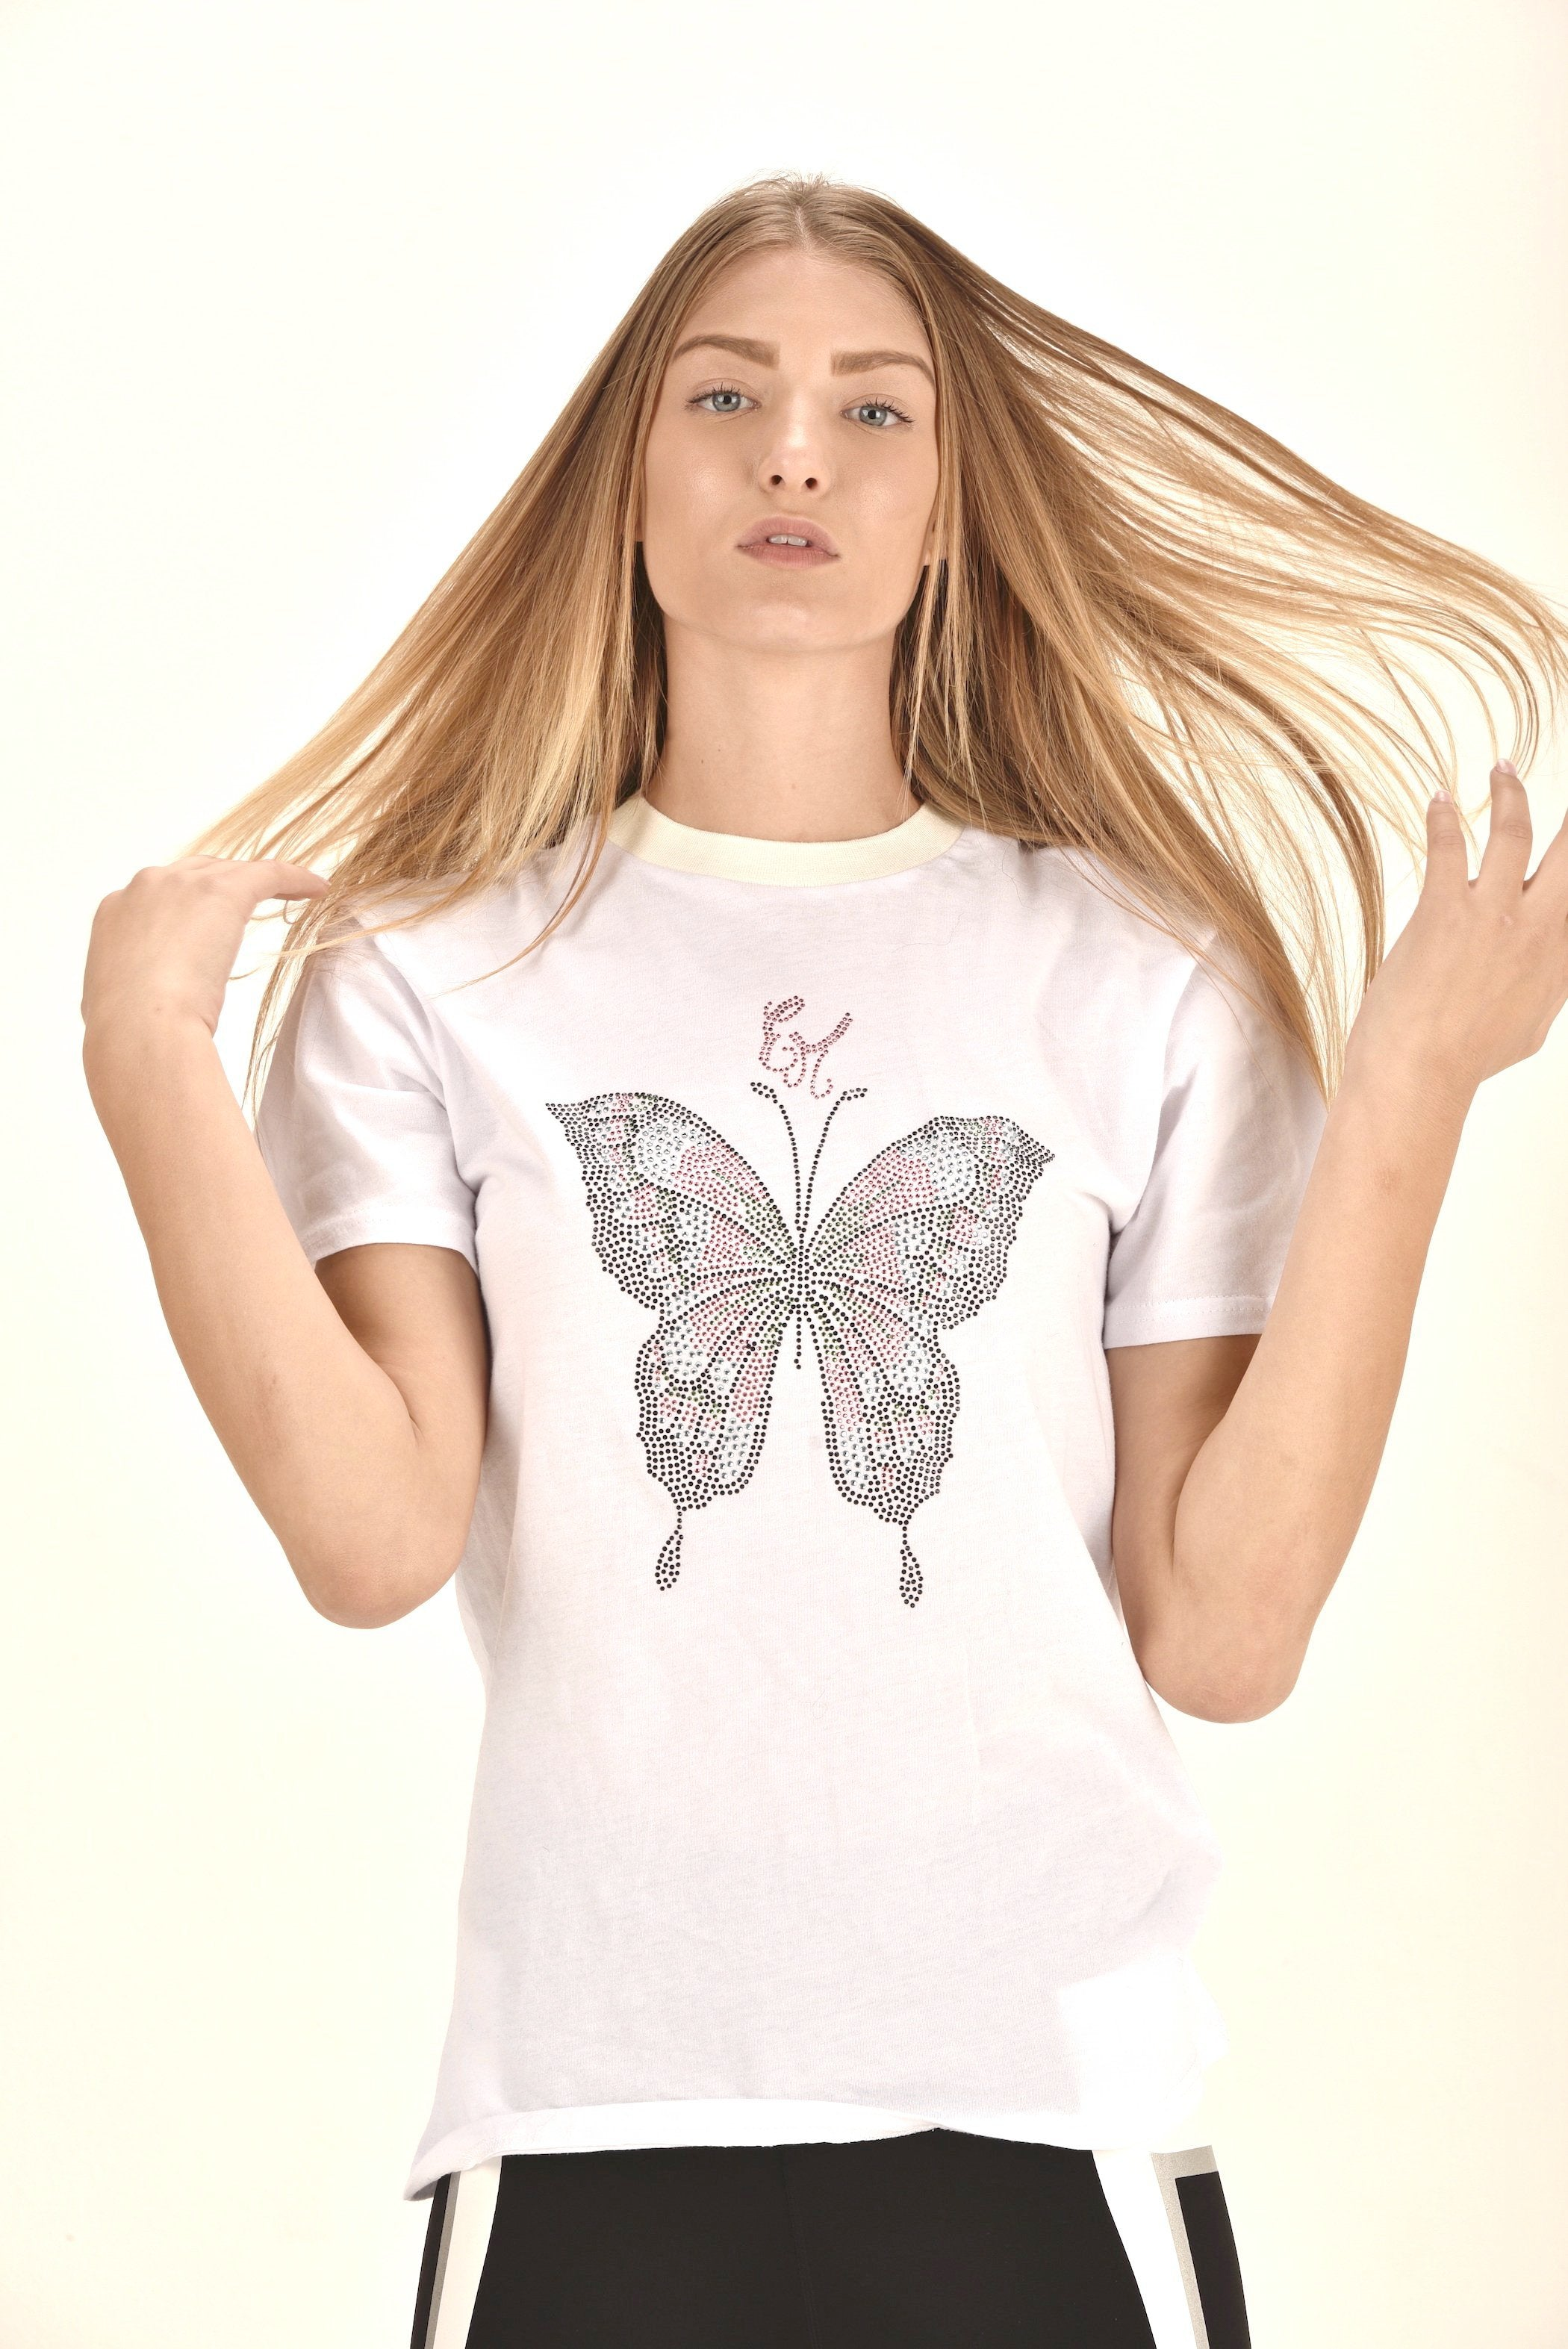 butterfly t shirt t shirts design graphic t shirts t shirt printing unique graphic t shirts  ellie mei design t shirts  logo tee women's black t shirts  gifts idea christmas gifts birthday gifts butterfly festival t shirts  fitted t shirt  white t shirts